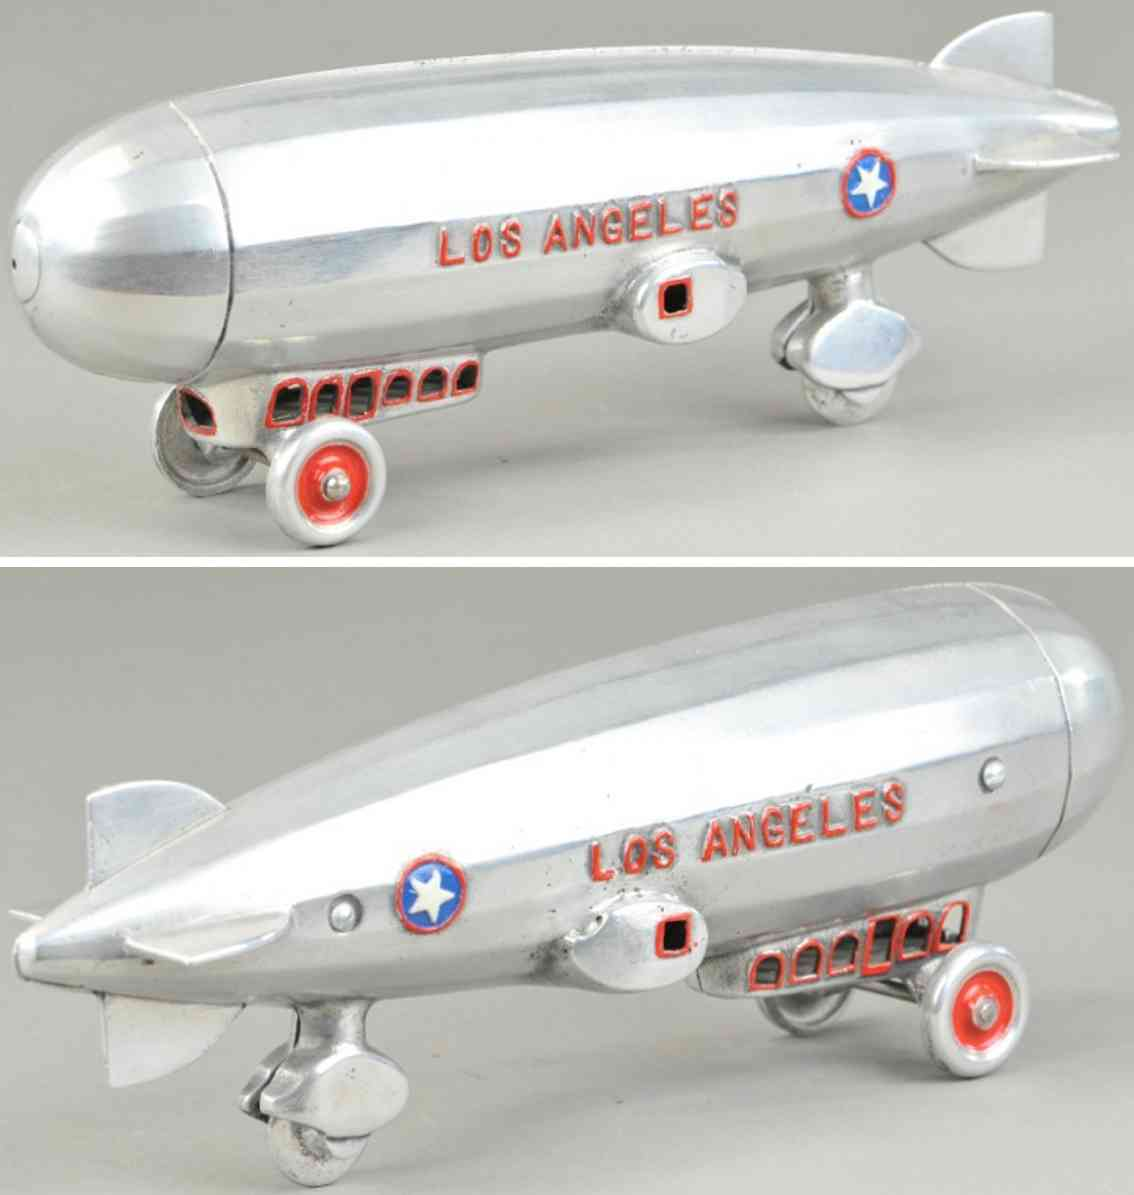 dent hardware co spielzeug los angeles zeppelin aluminium